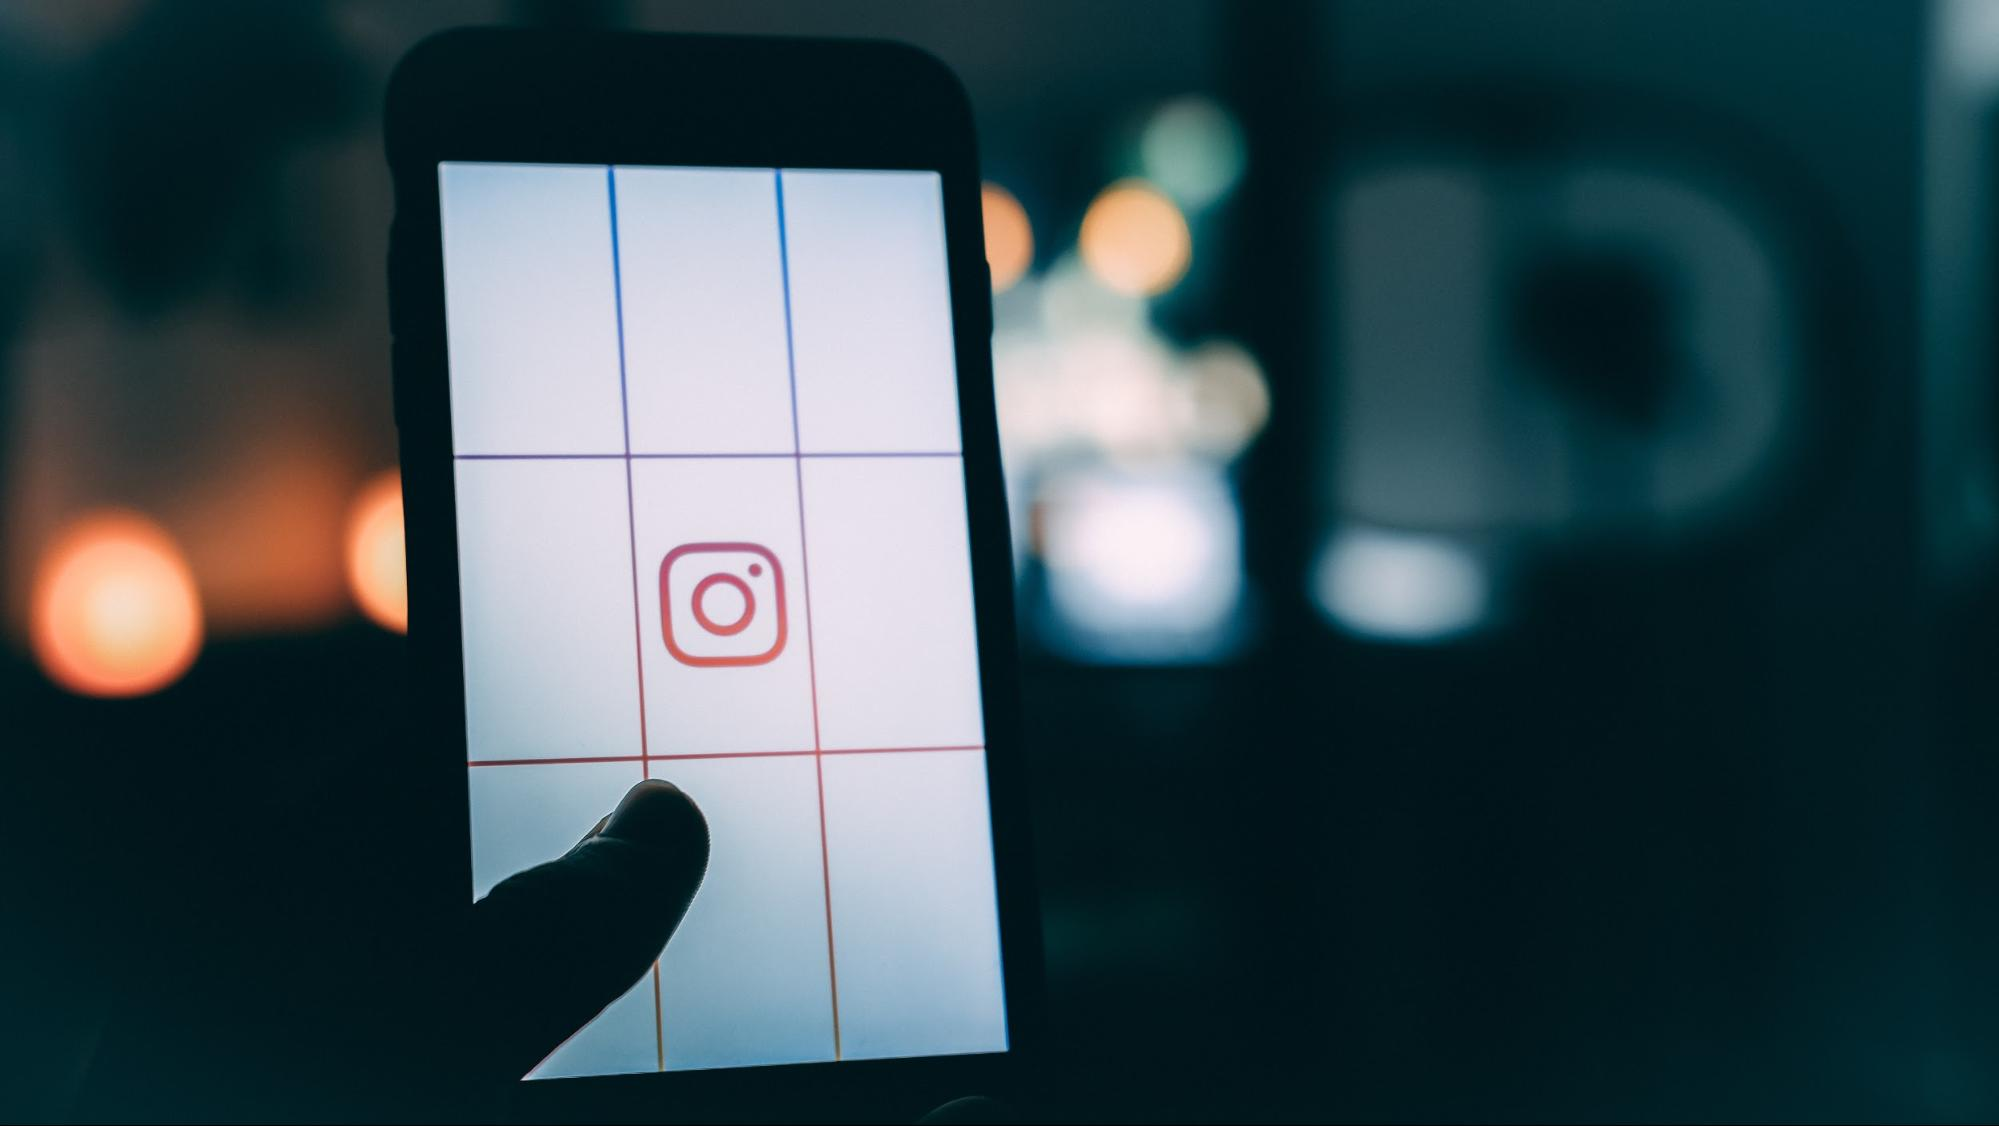 How-To Hide Instagram Hashtags